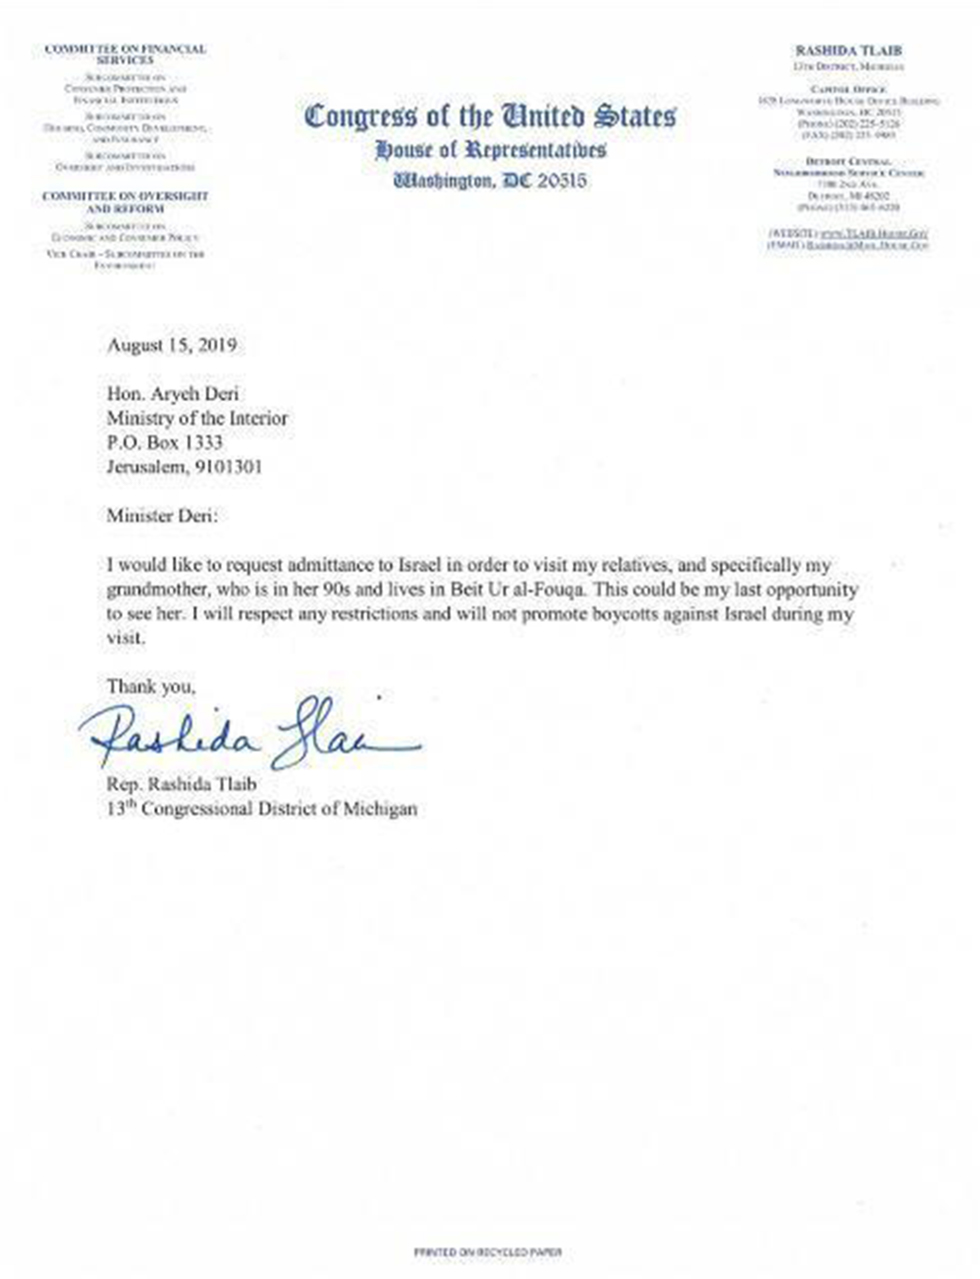 Tlaib's letter to Interior Minister Deri